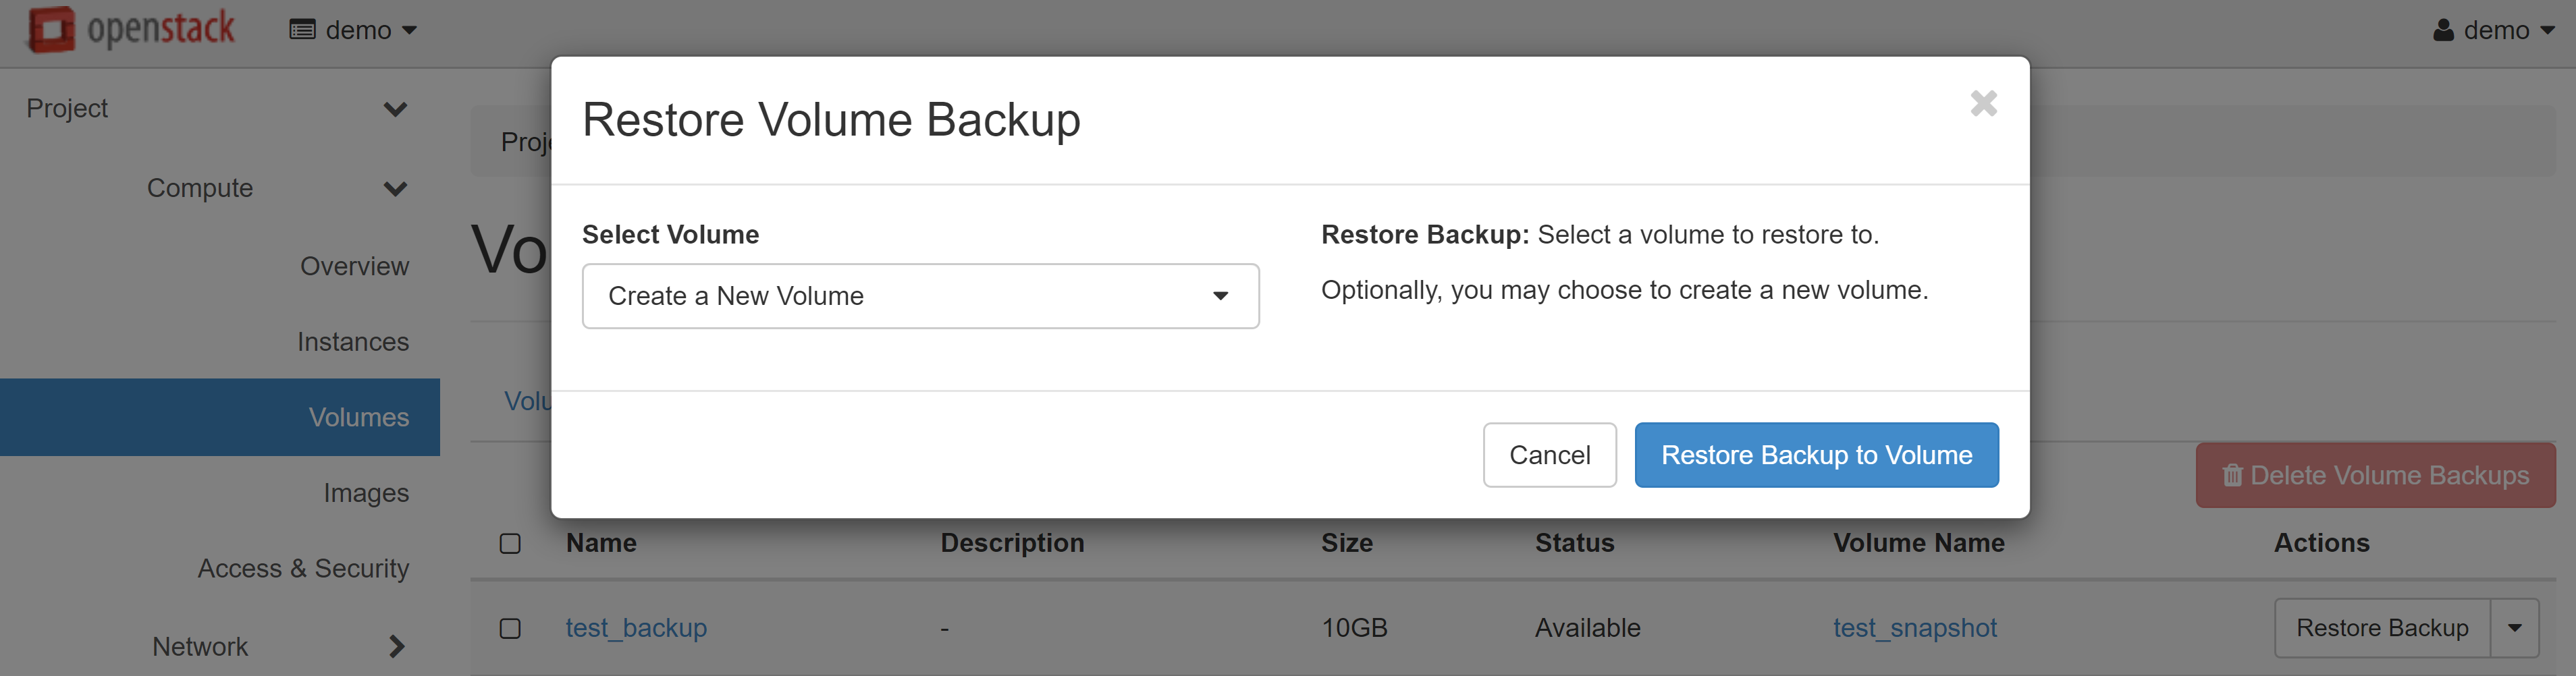 RESTORE BACKPUP TO VOLUME